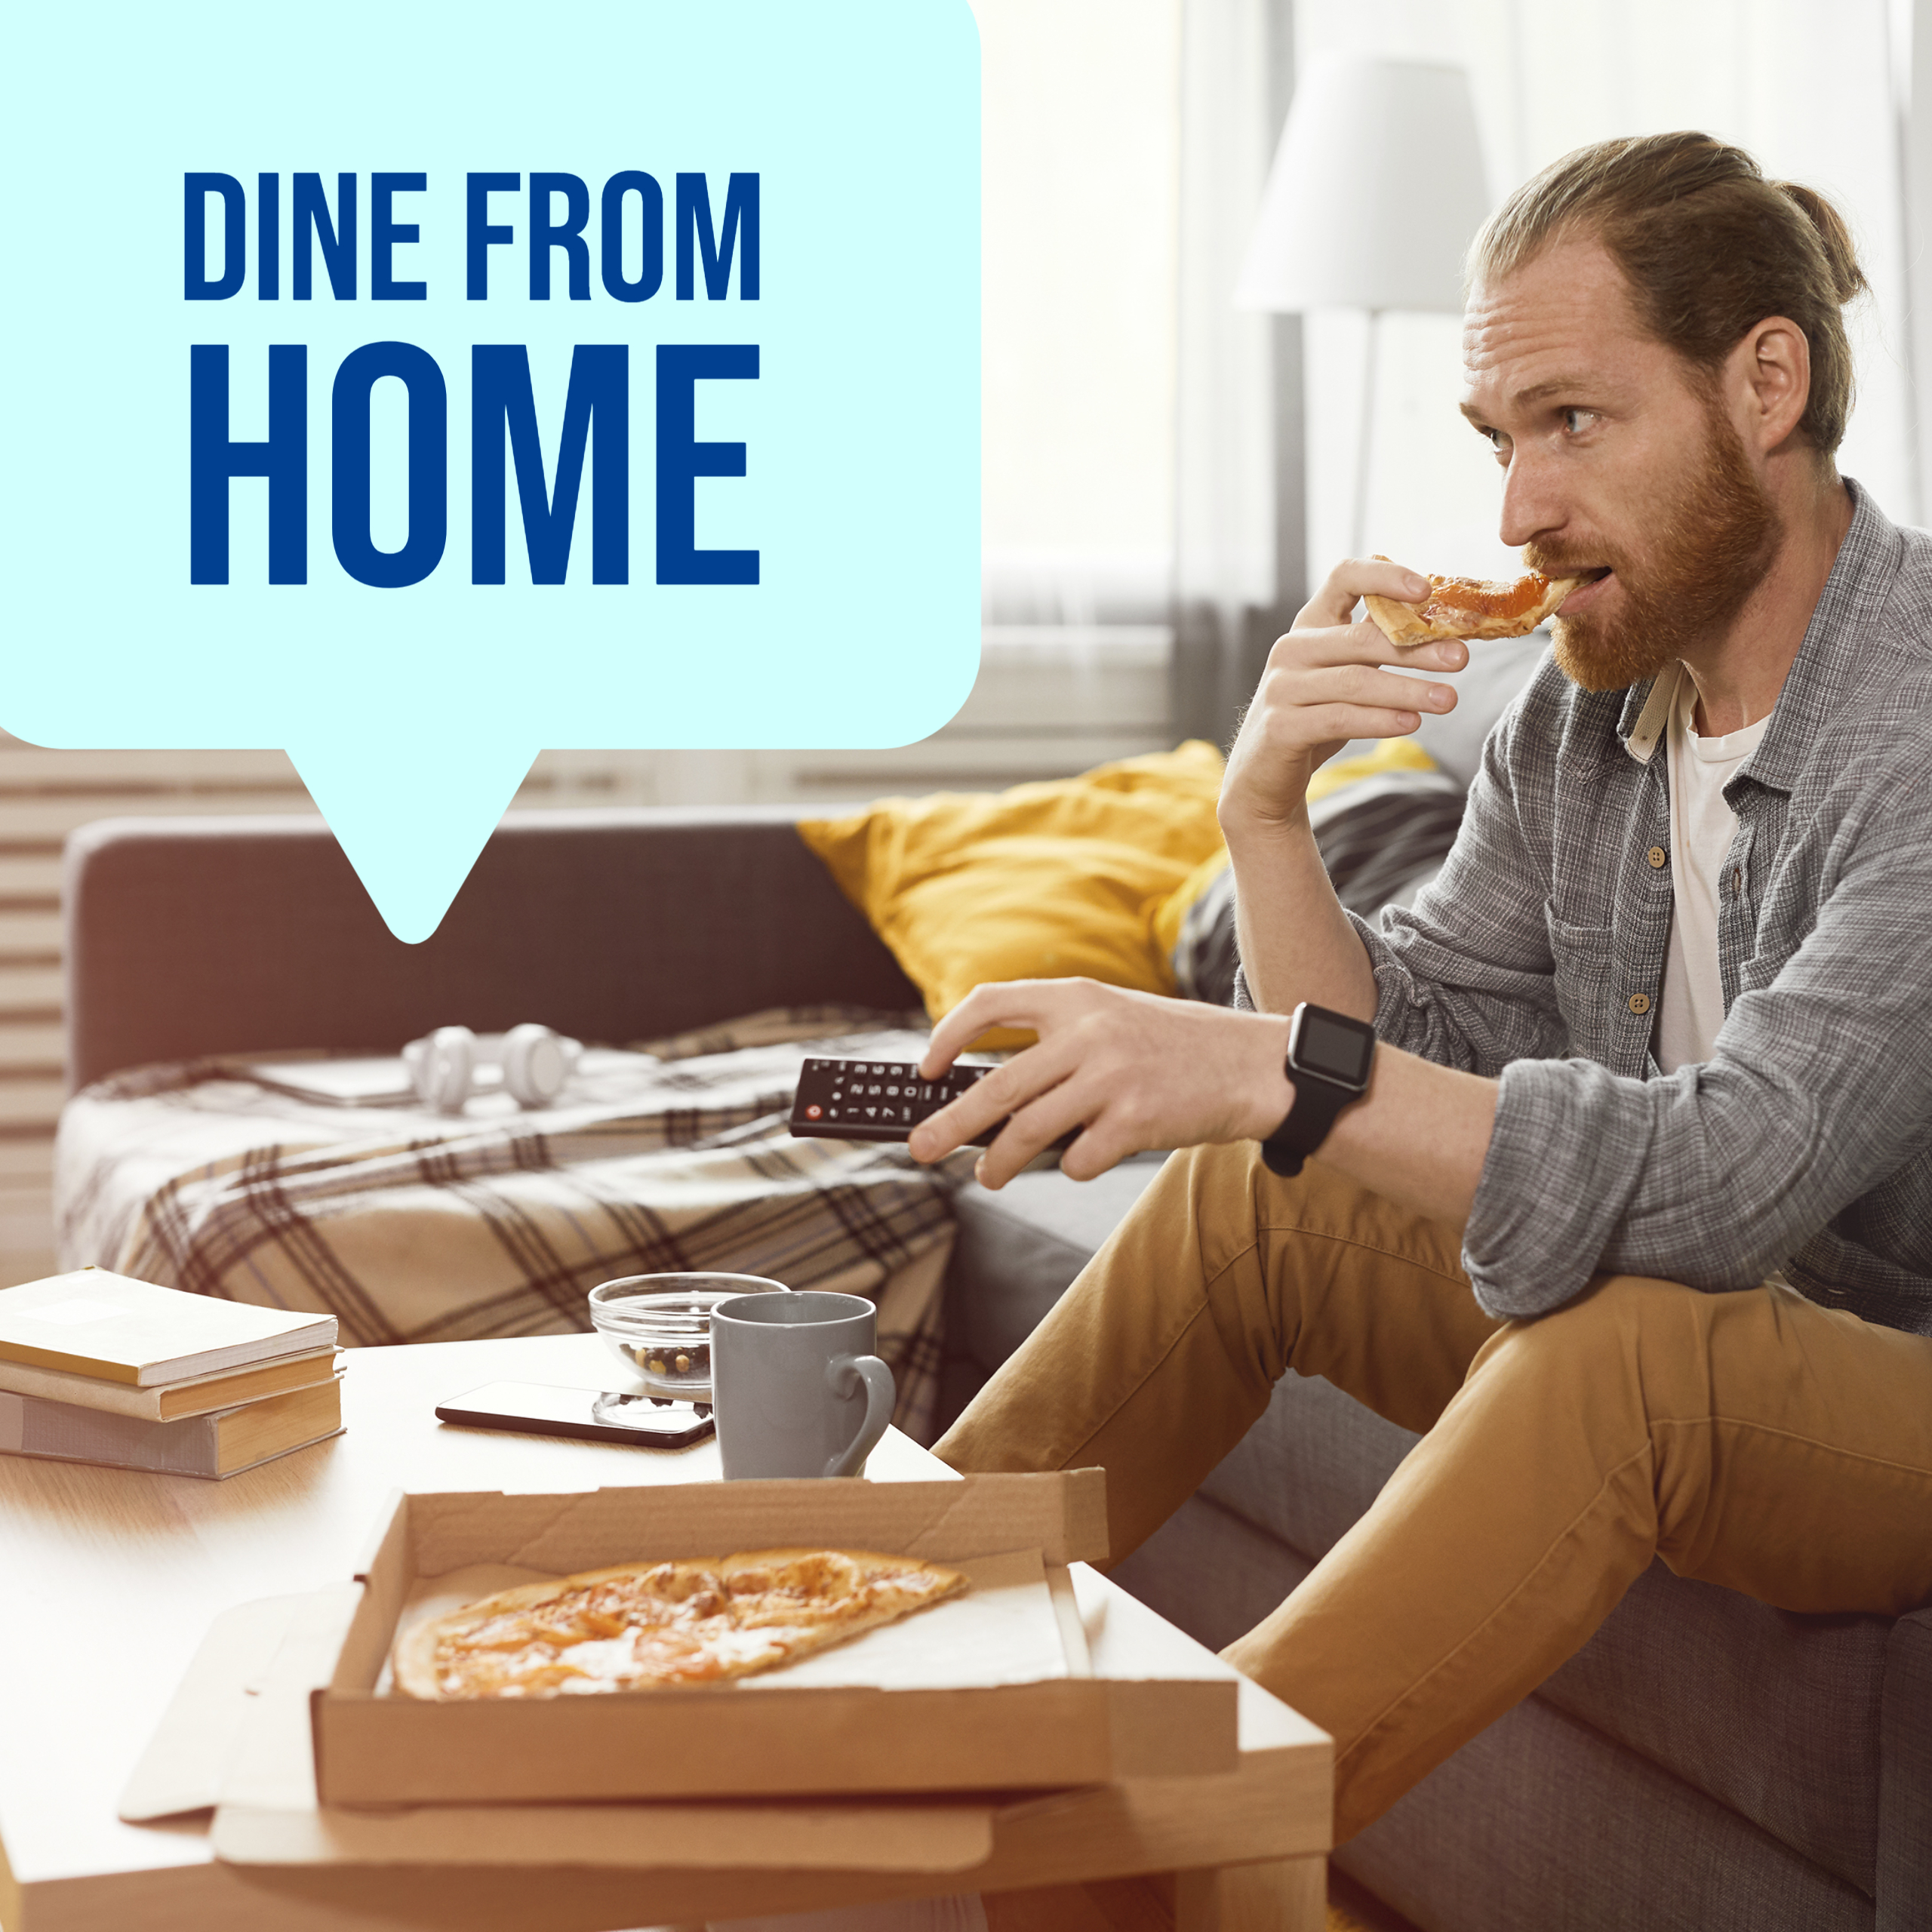 Dine From Home